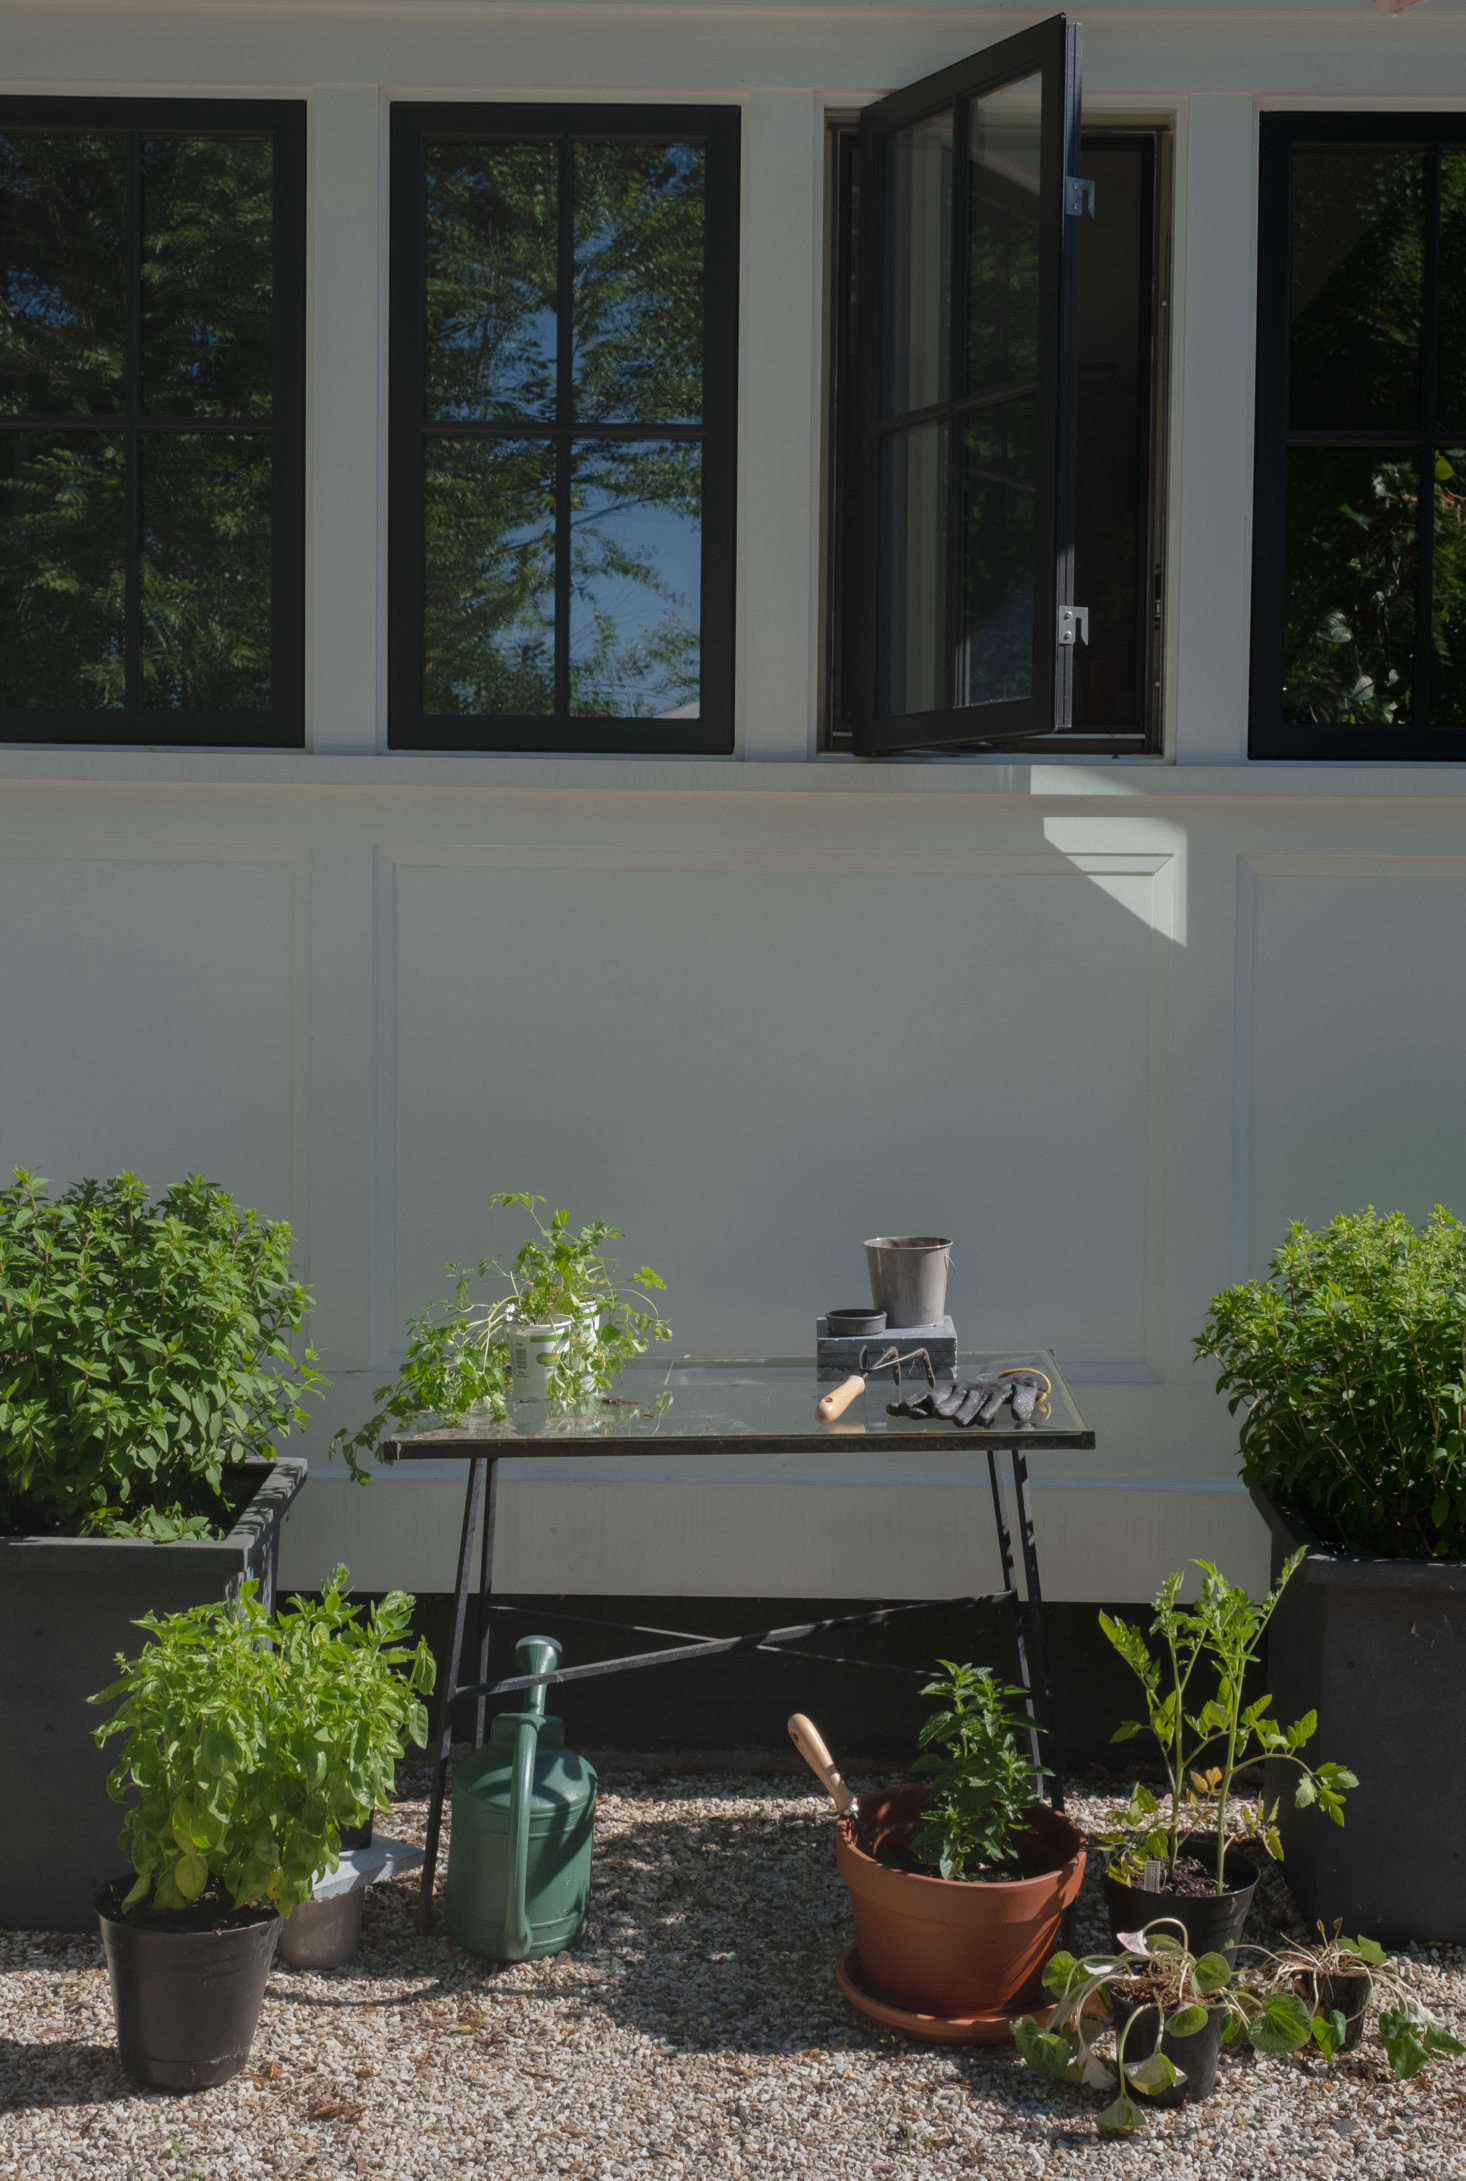 A glass table serves as potting bench, with basil and small strawberries ready to be planted.